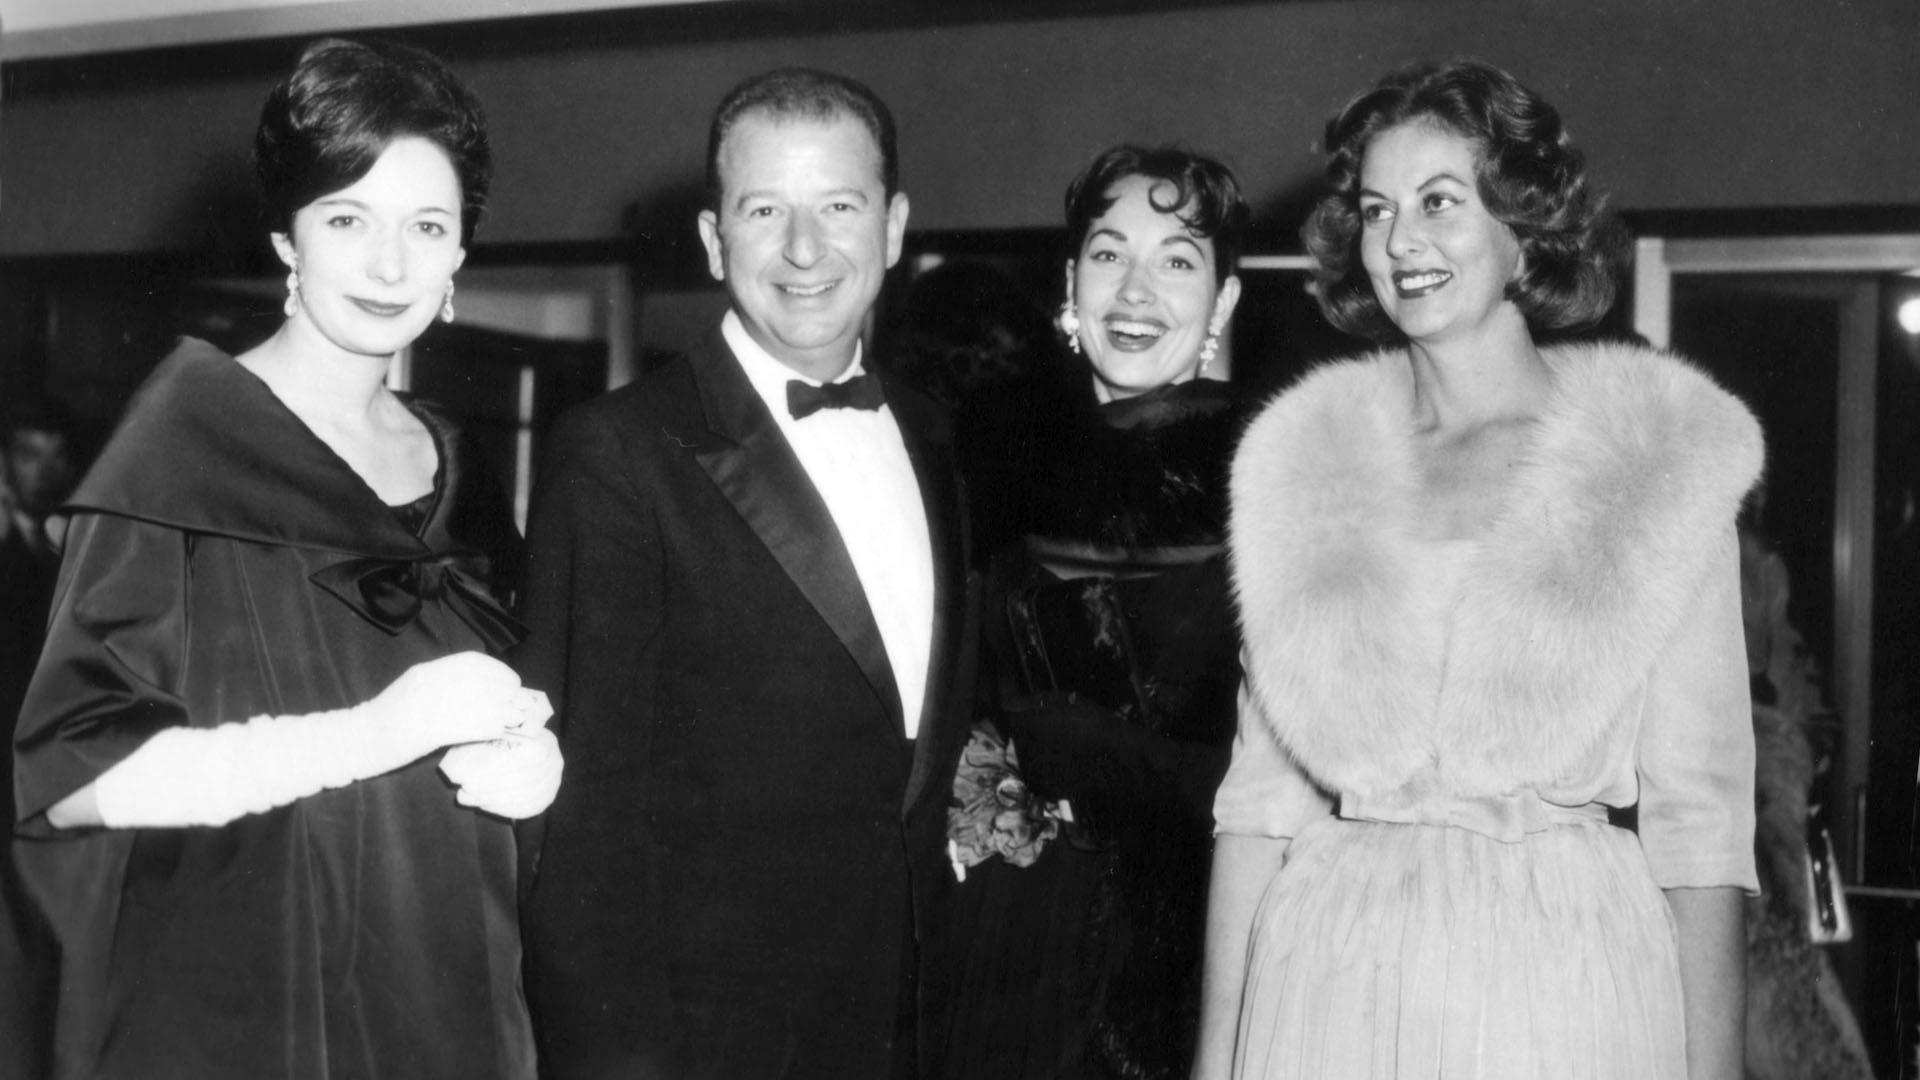 San Francisco Chronicle columnist Herb Caen (second from left) mingles with festival guests, including Phyllis Fraser (far right), at the 2nd San Francisco International Film Festival, 1959.